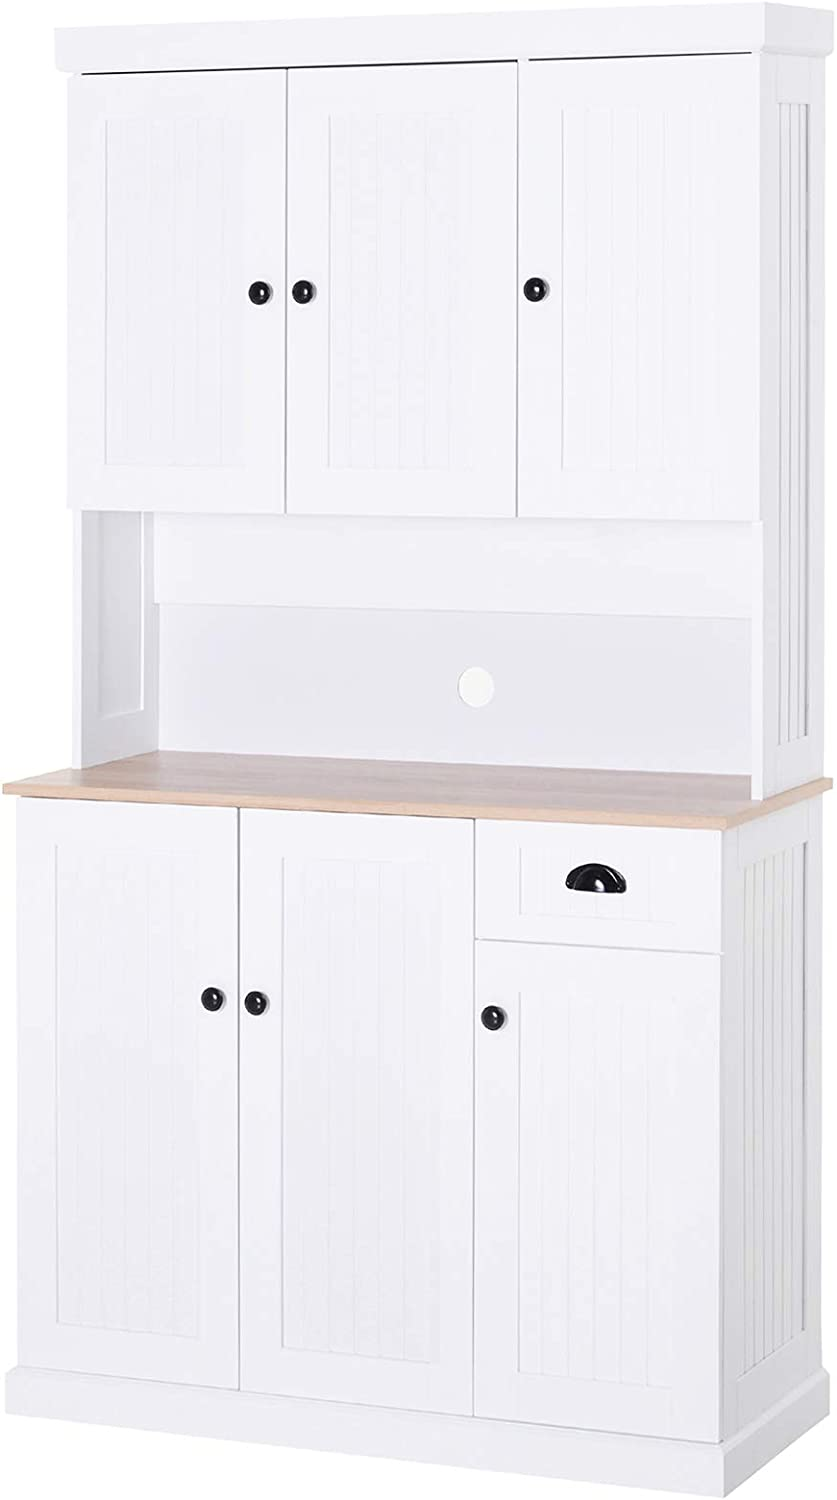 """HOMCOM 71"""" Wood Kitchen Pantry Storage Cabinet Microwave Oven Stand with Storage - White/Oak Grain"""